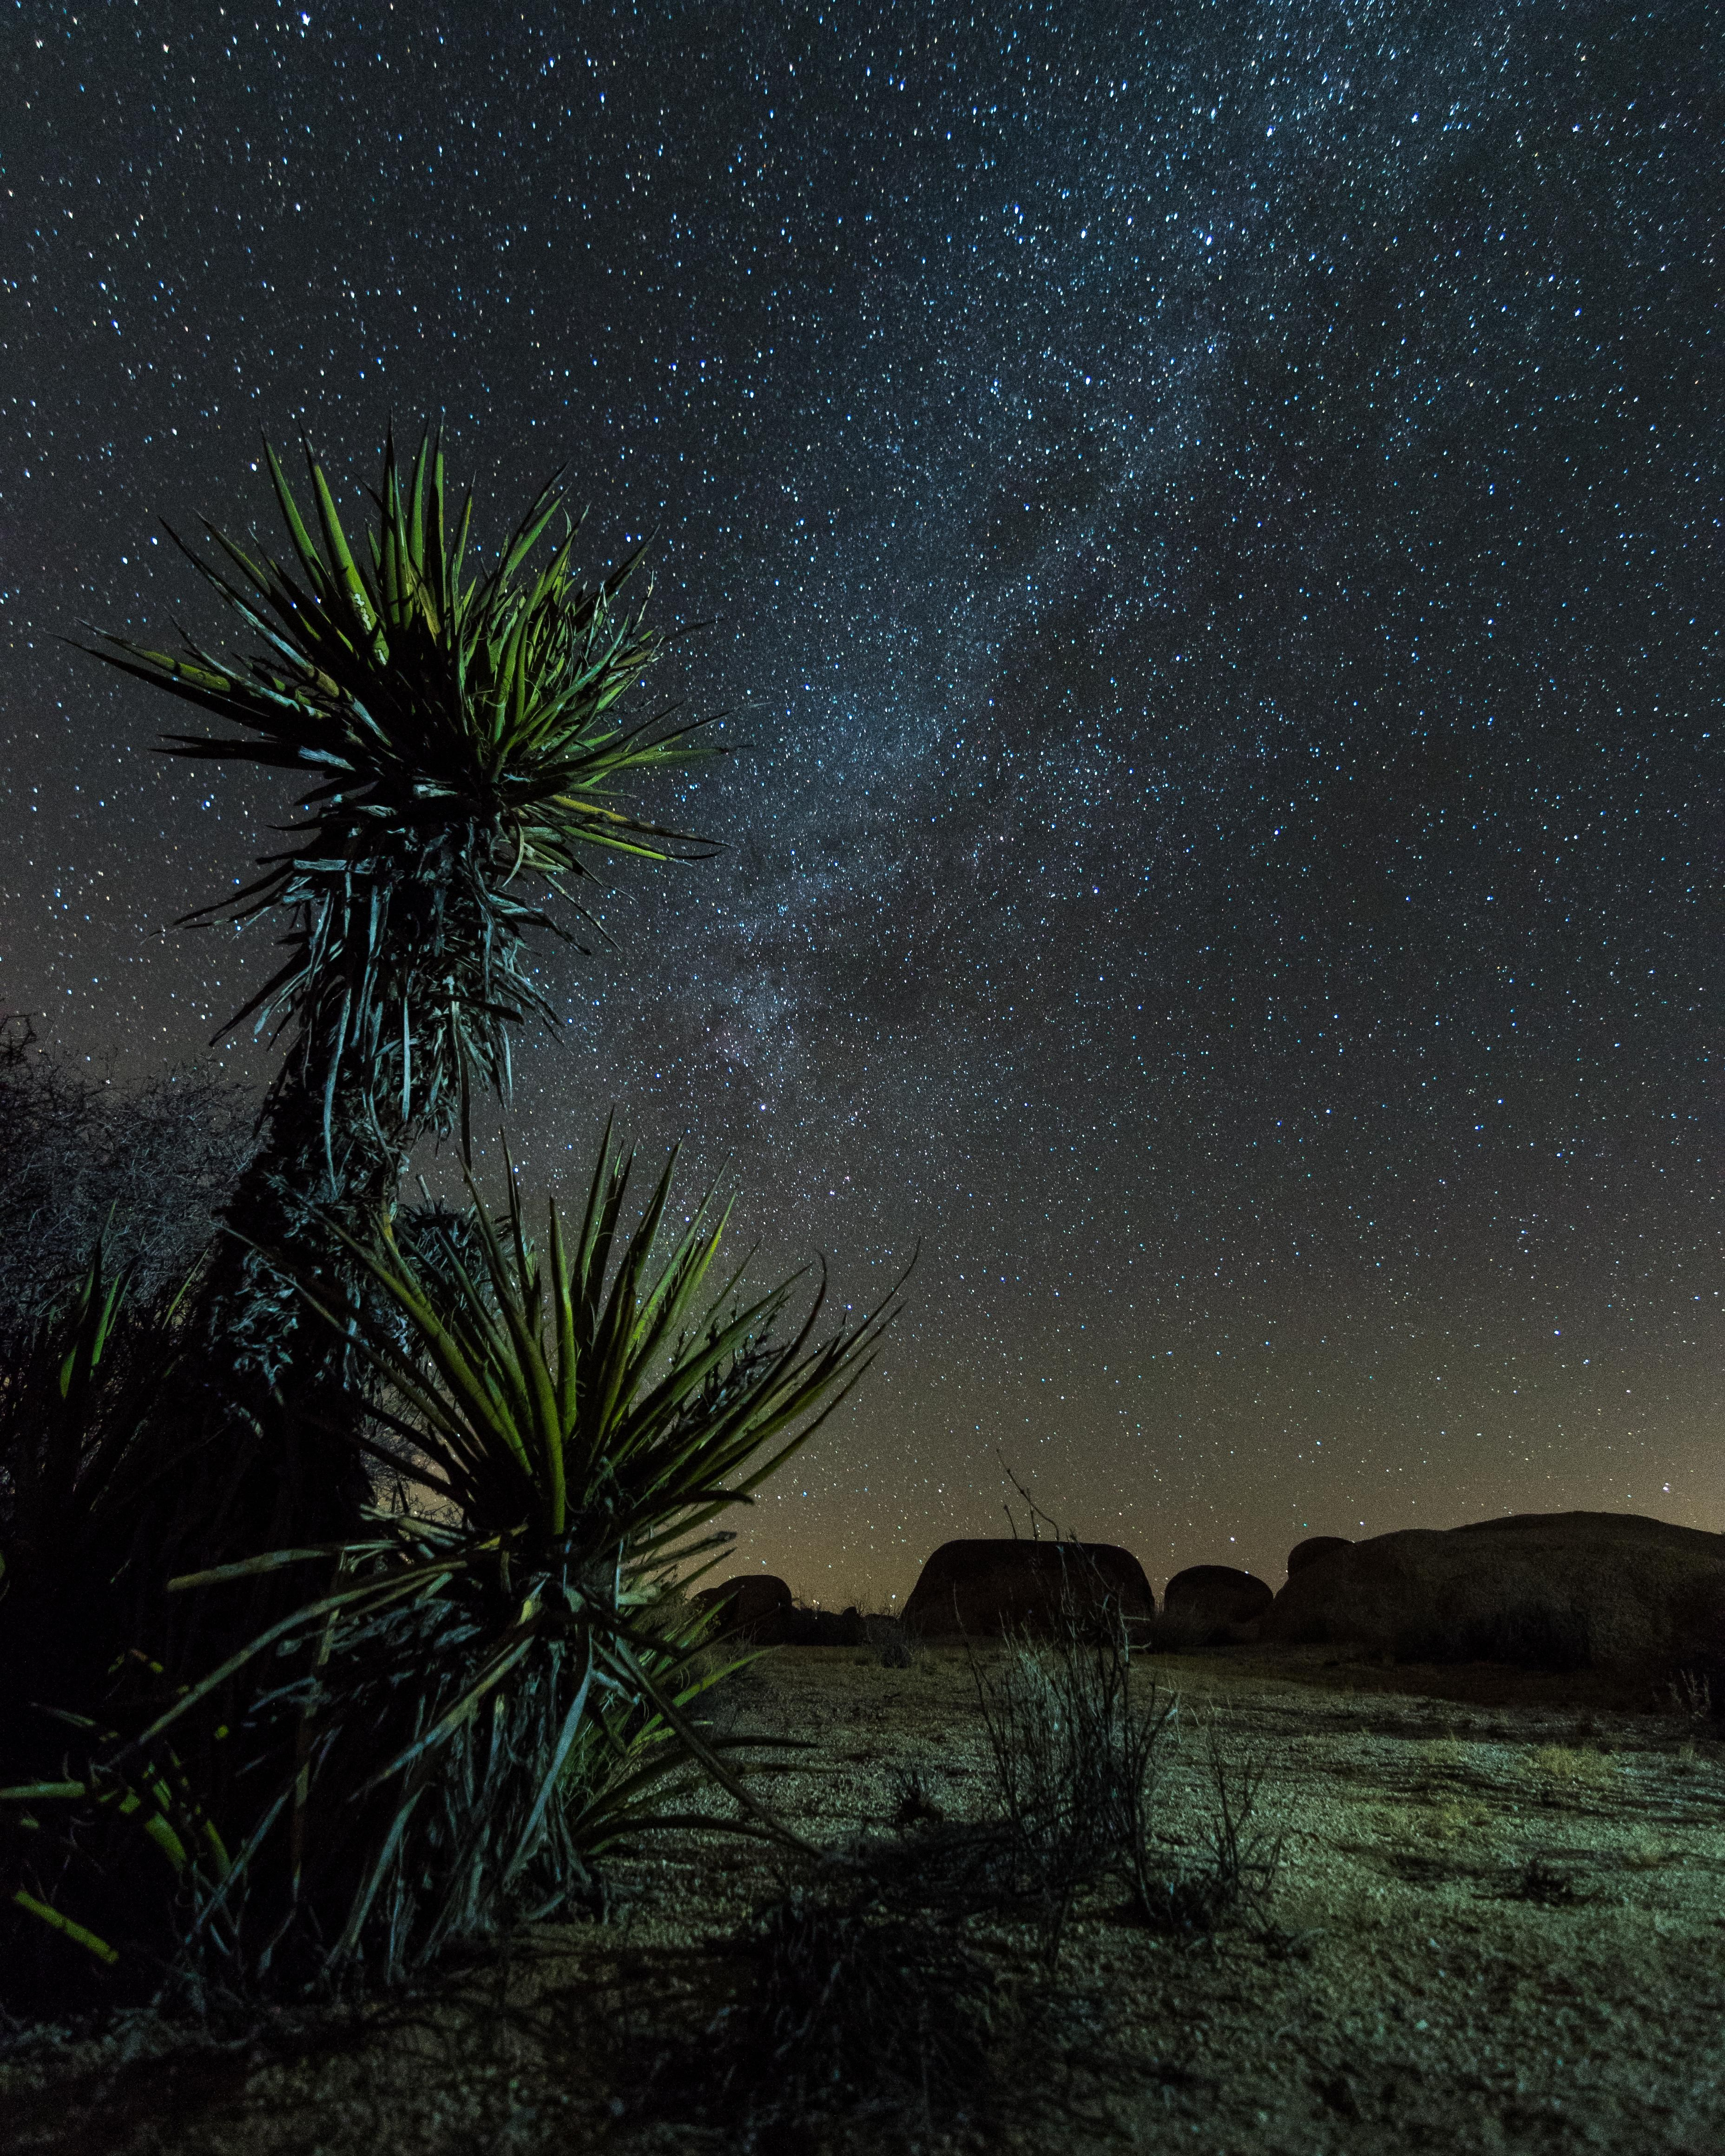 [3712  4640] Milky Way in Joshua Tree National Park [OC] -Please check the website for more pics